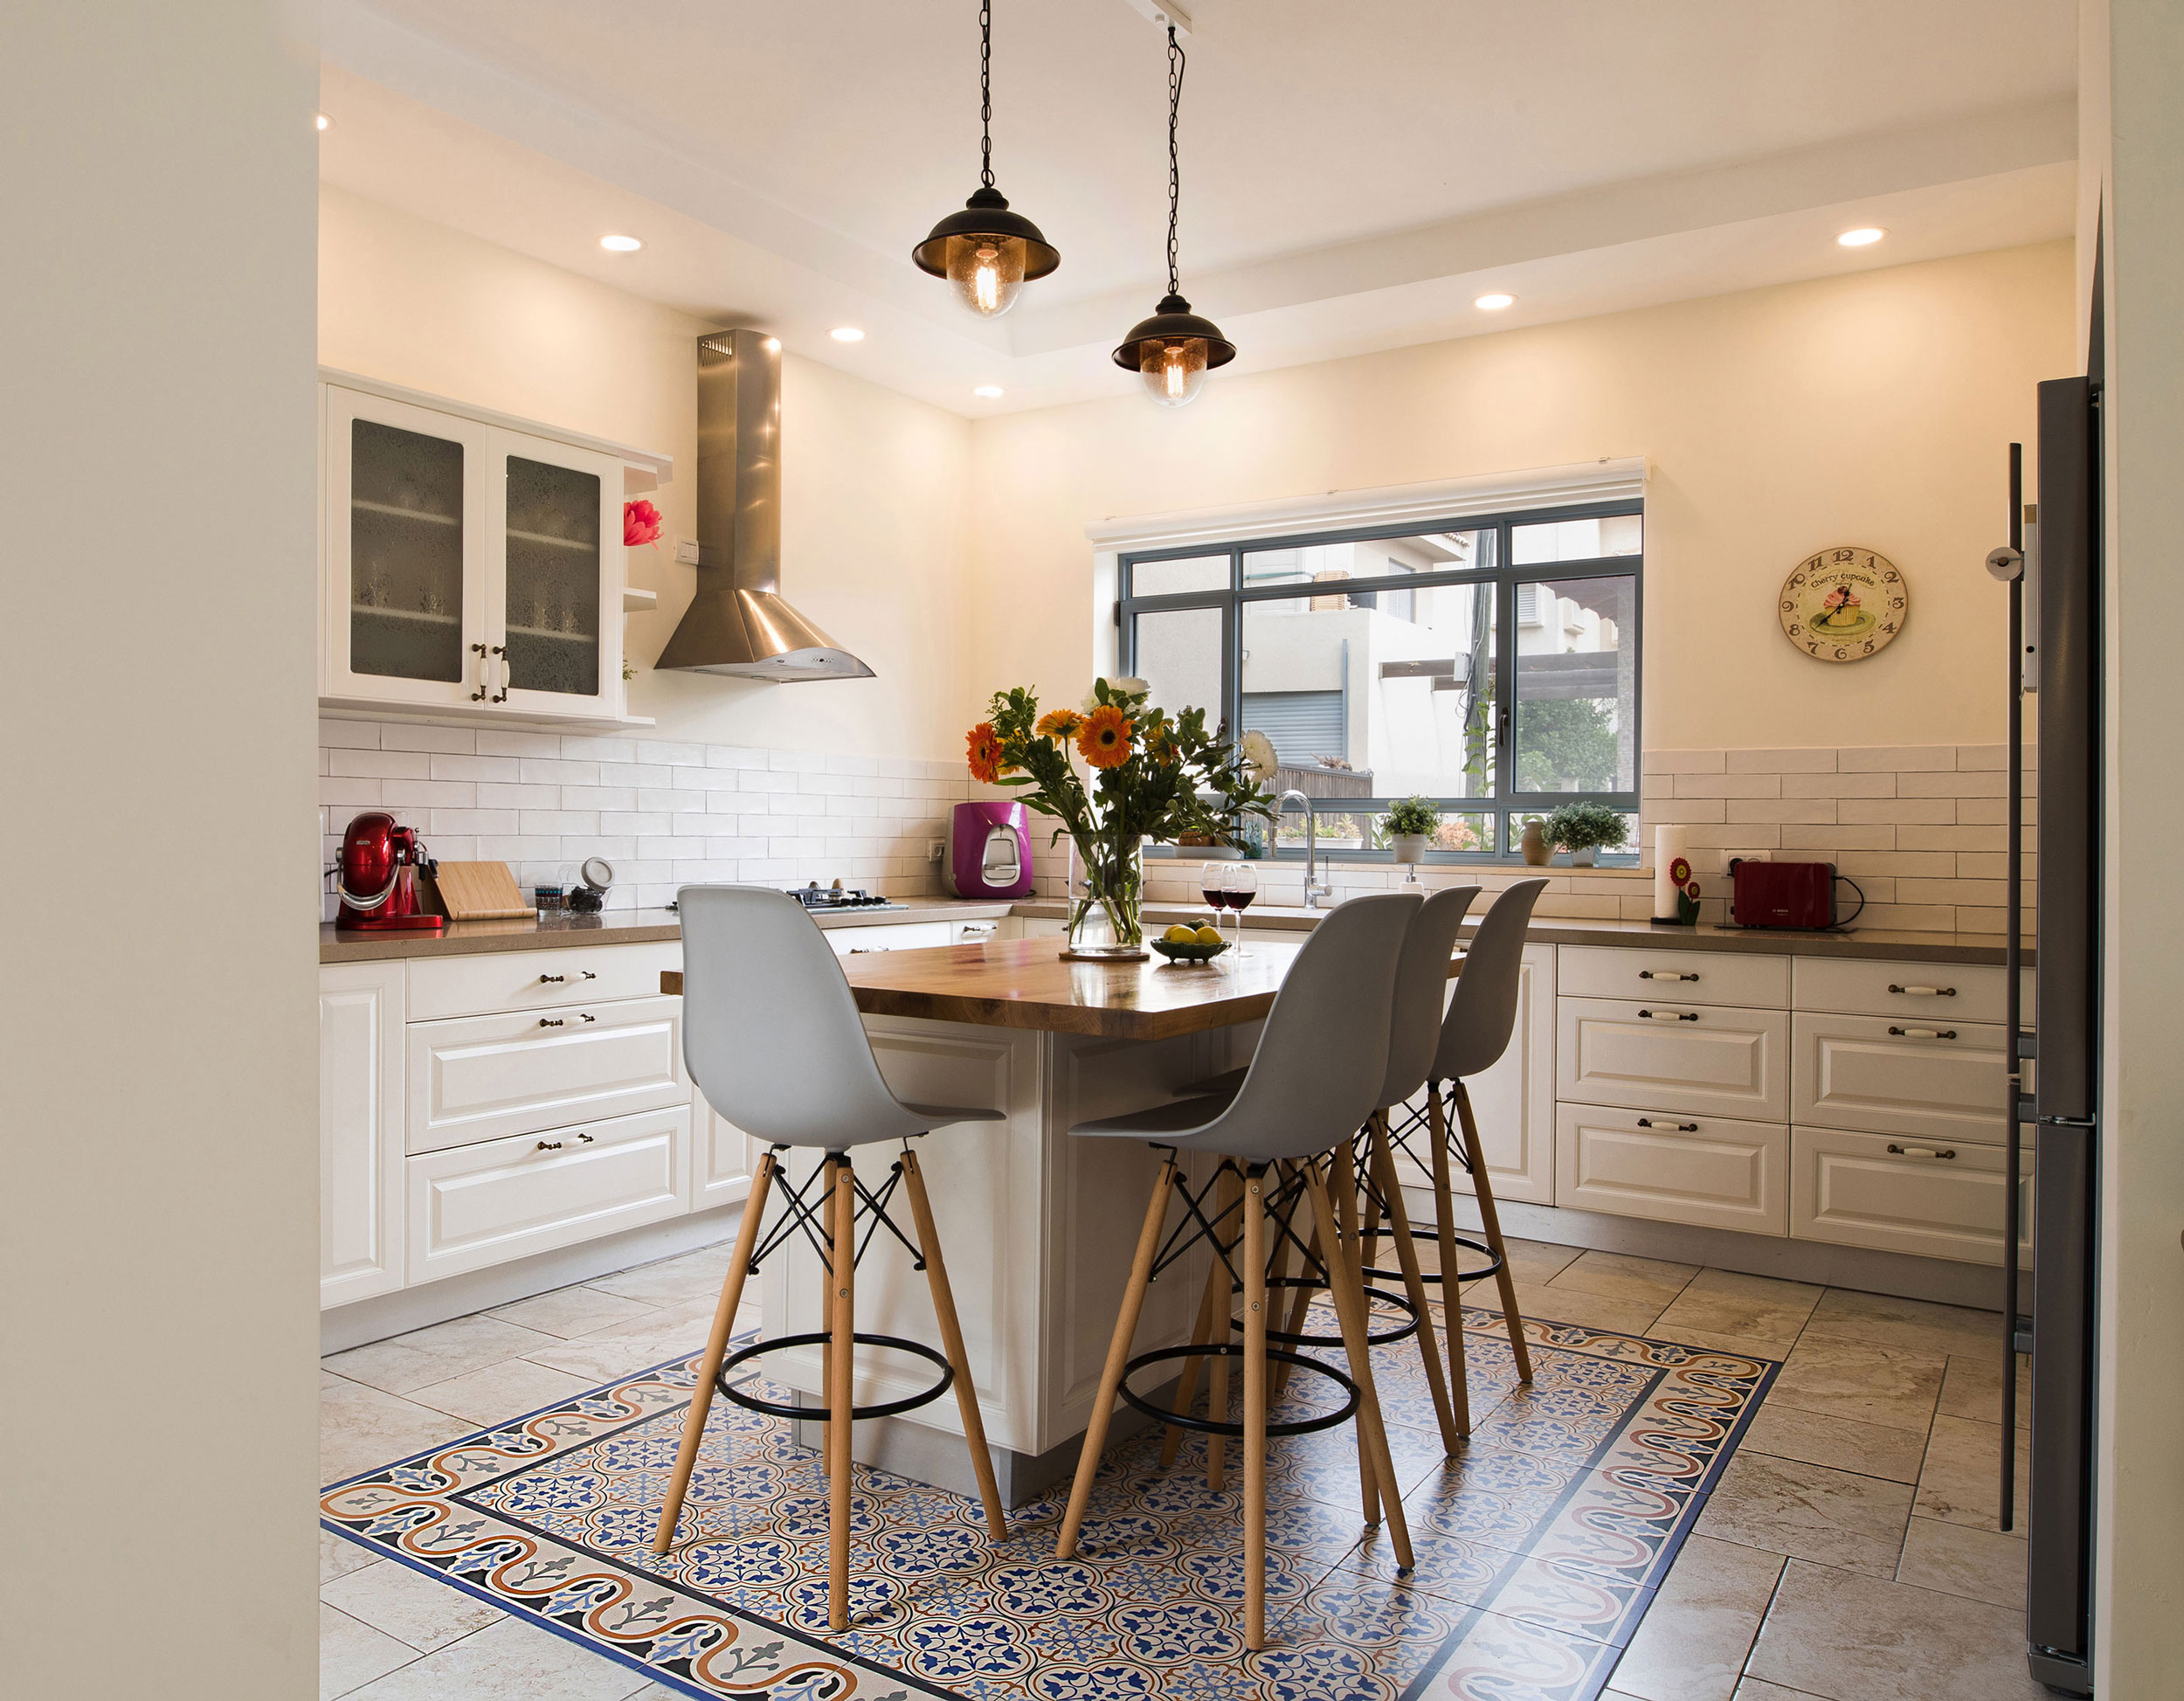 Kitchen design and styling